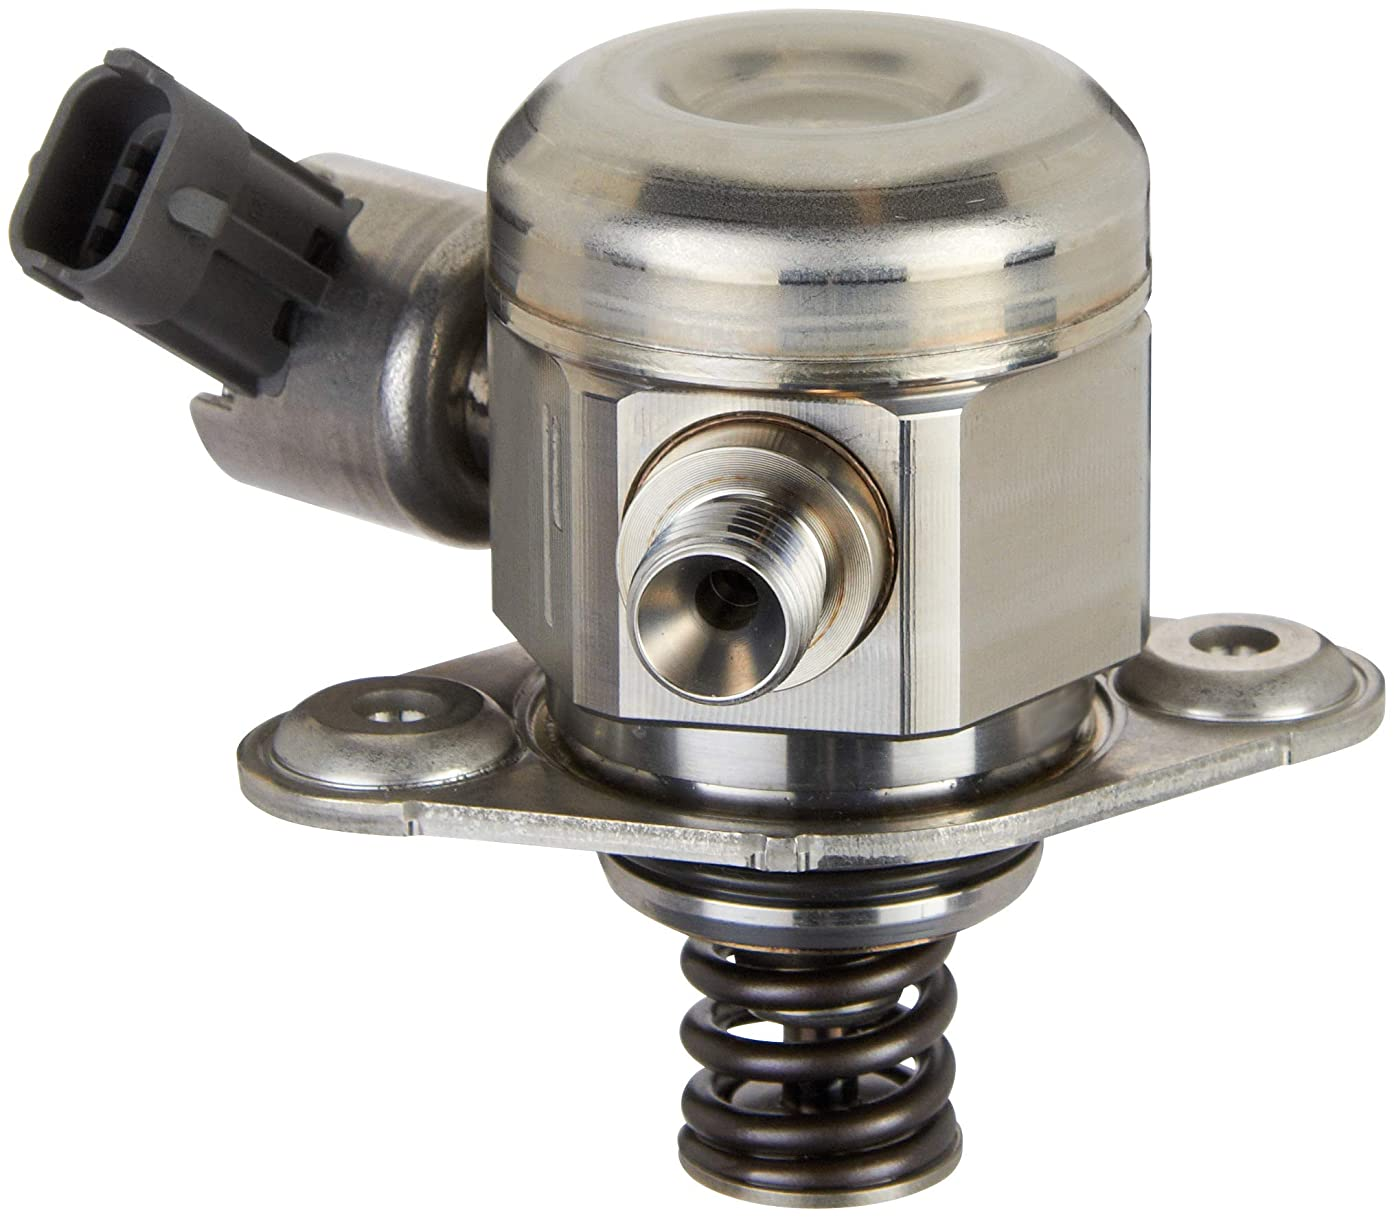 Spectra Premium FI1516 Direct Injection High Pressure Fuel Pump